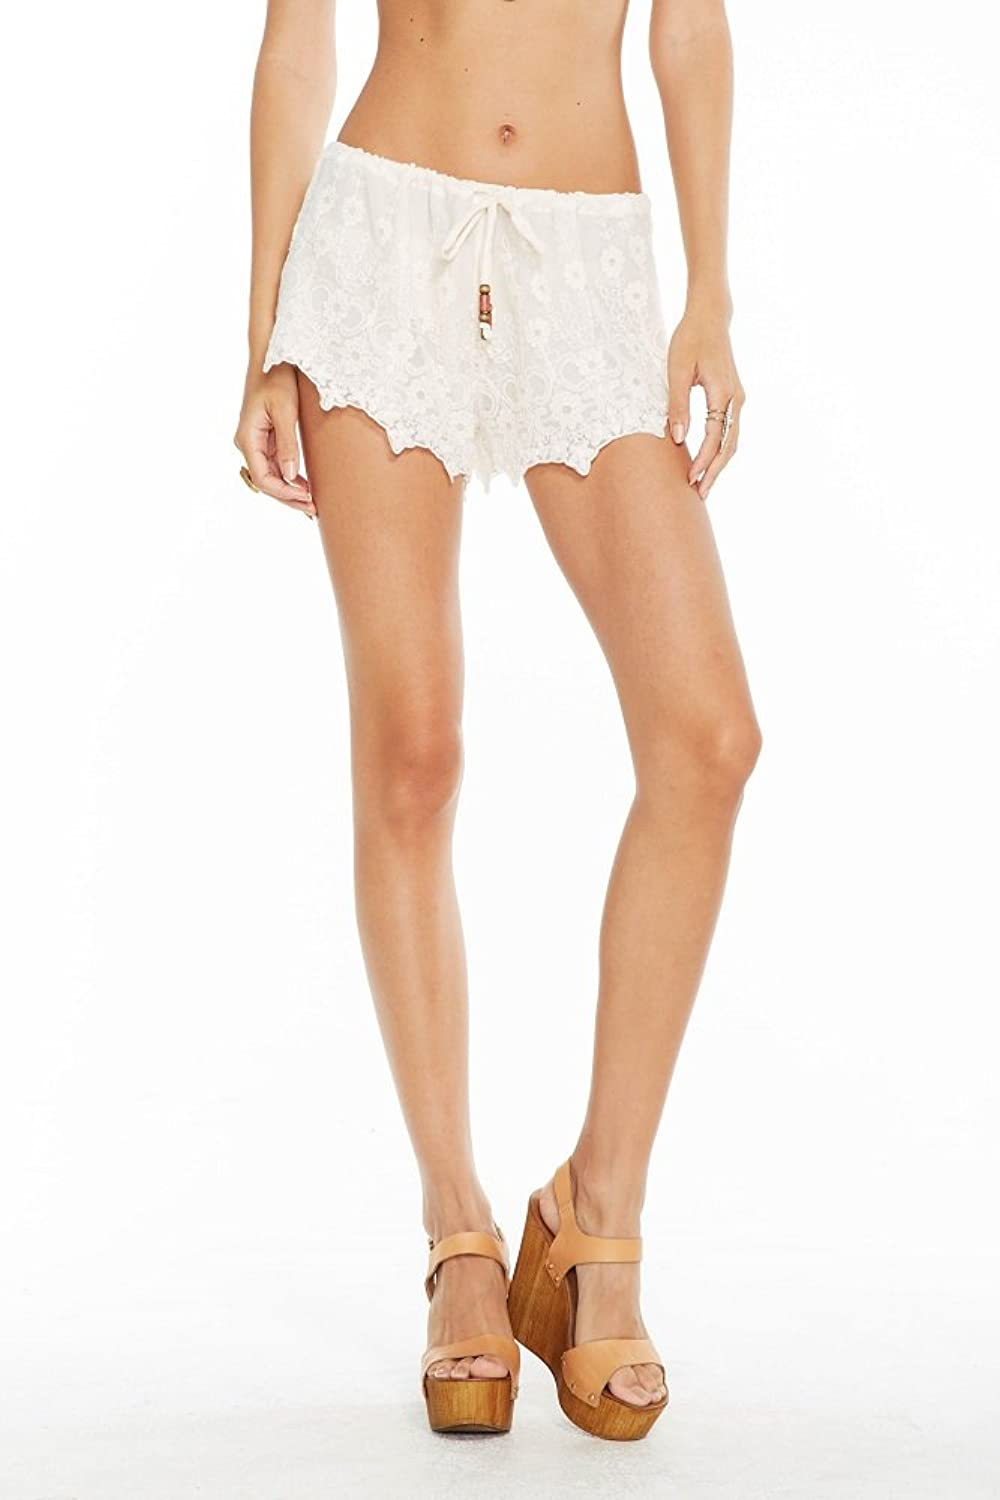 Chaser Women's Vintage Lace Drawstring Short